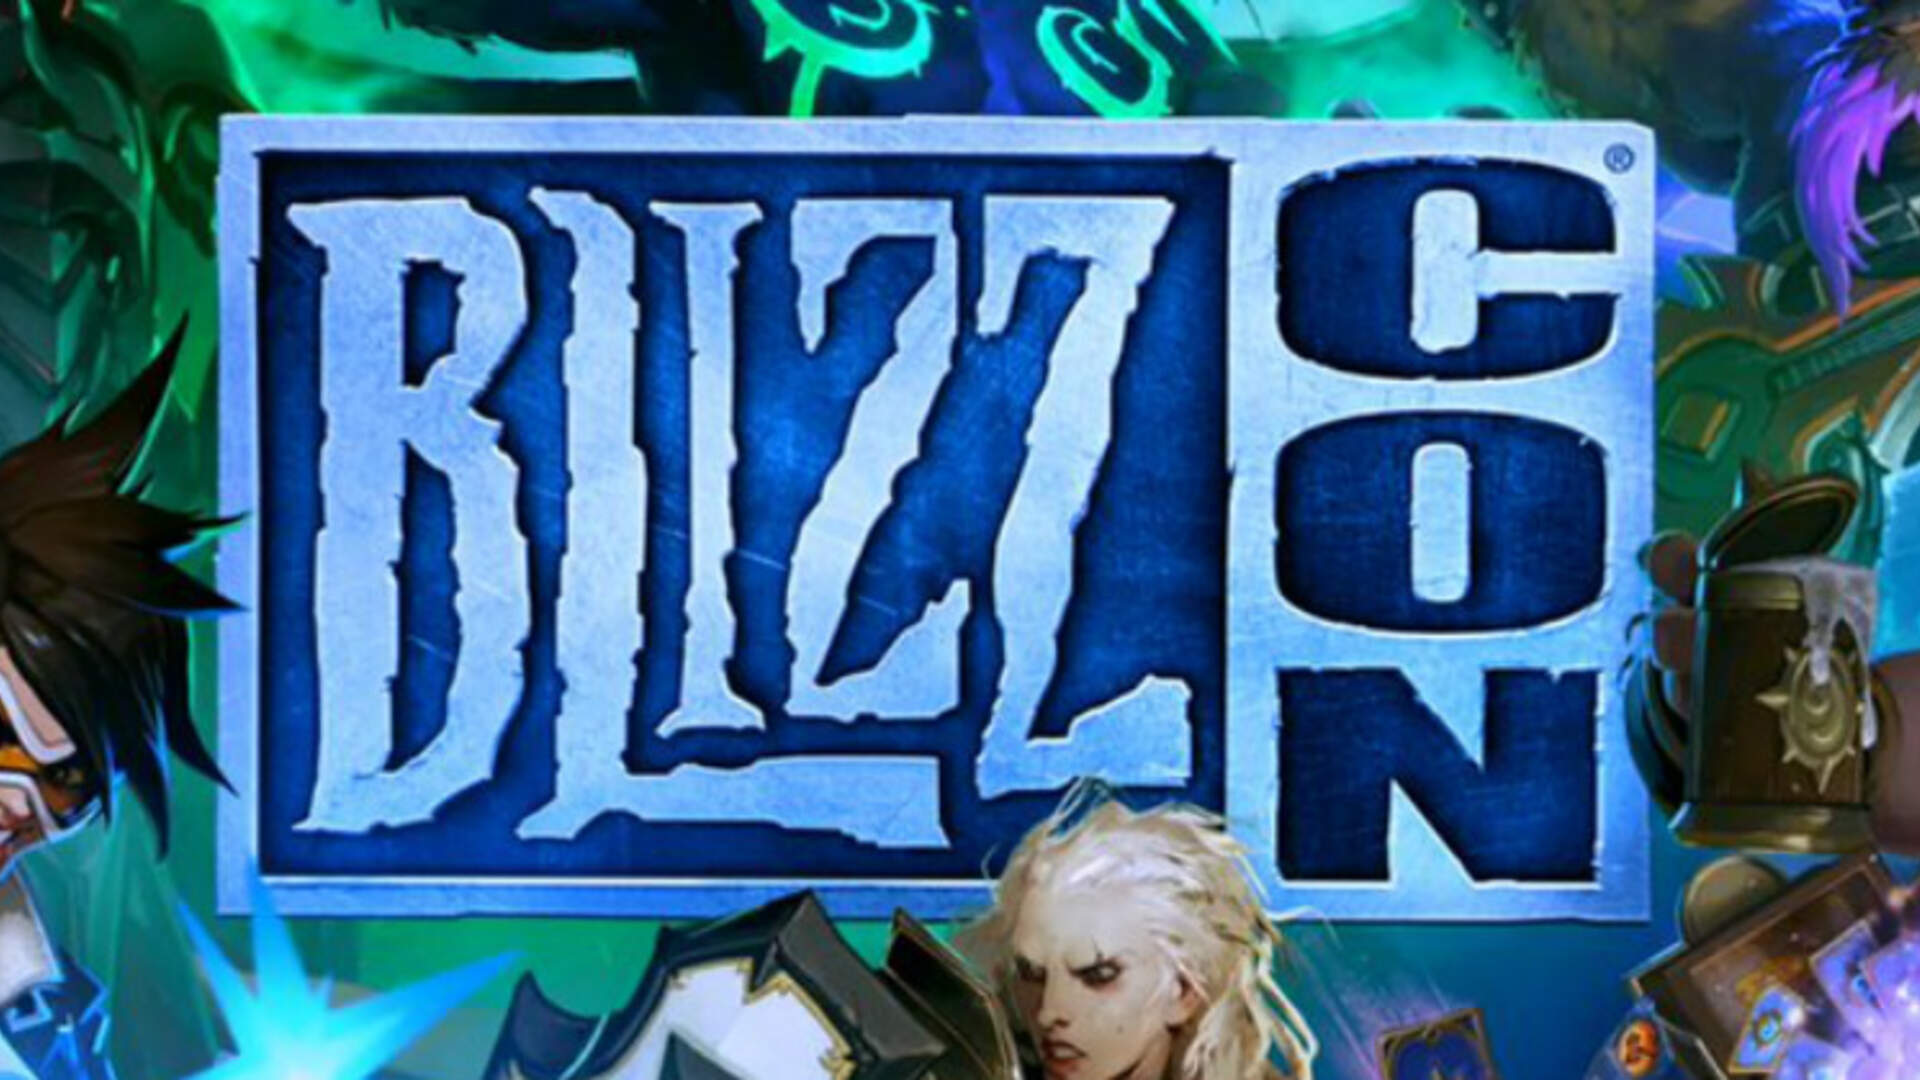 Blizzcon 2016: All the News That's Fit to Print